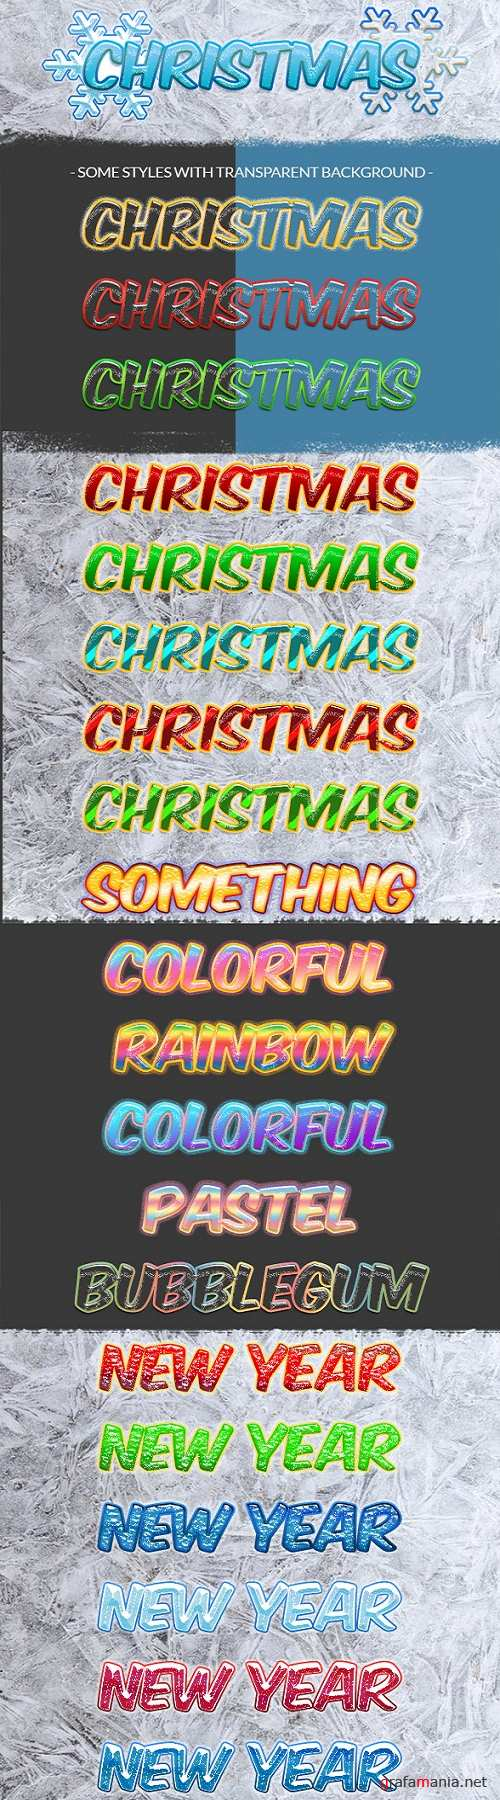 Holiday Christmas Photoshop Text Styles 21078144